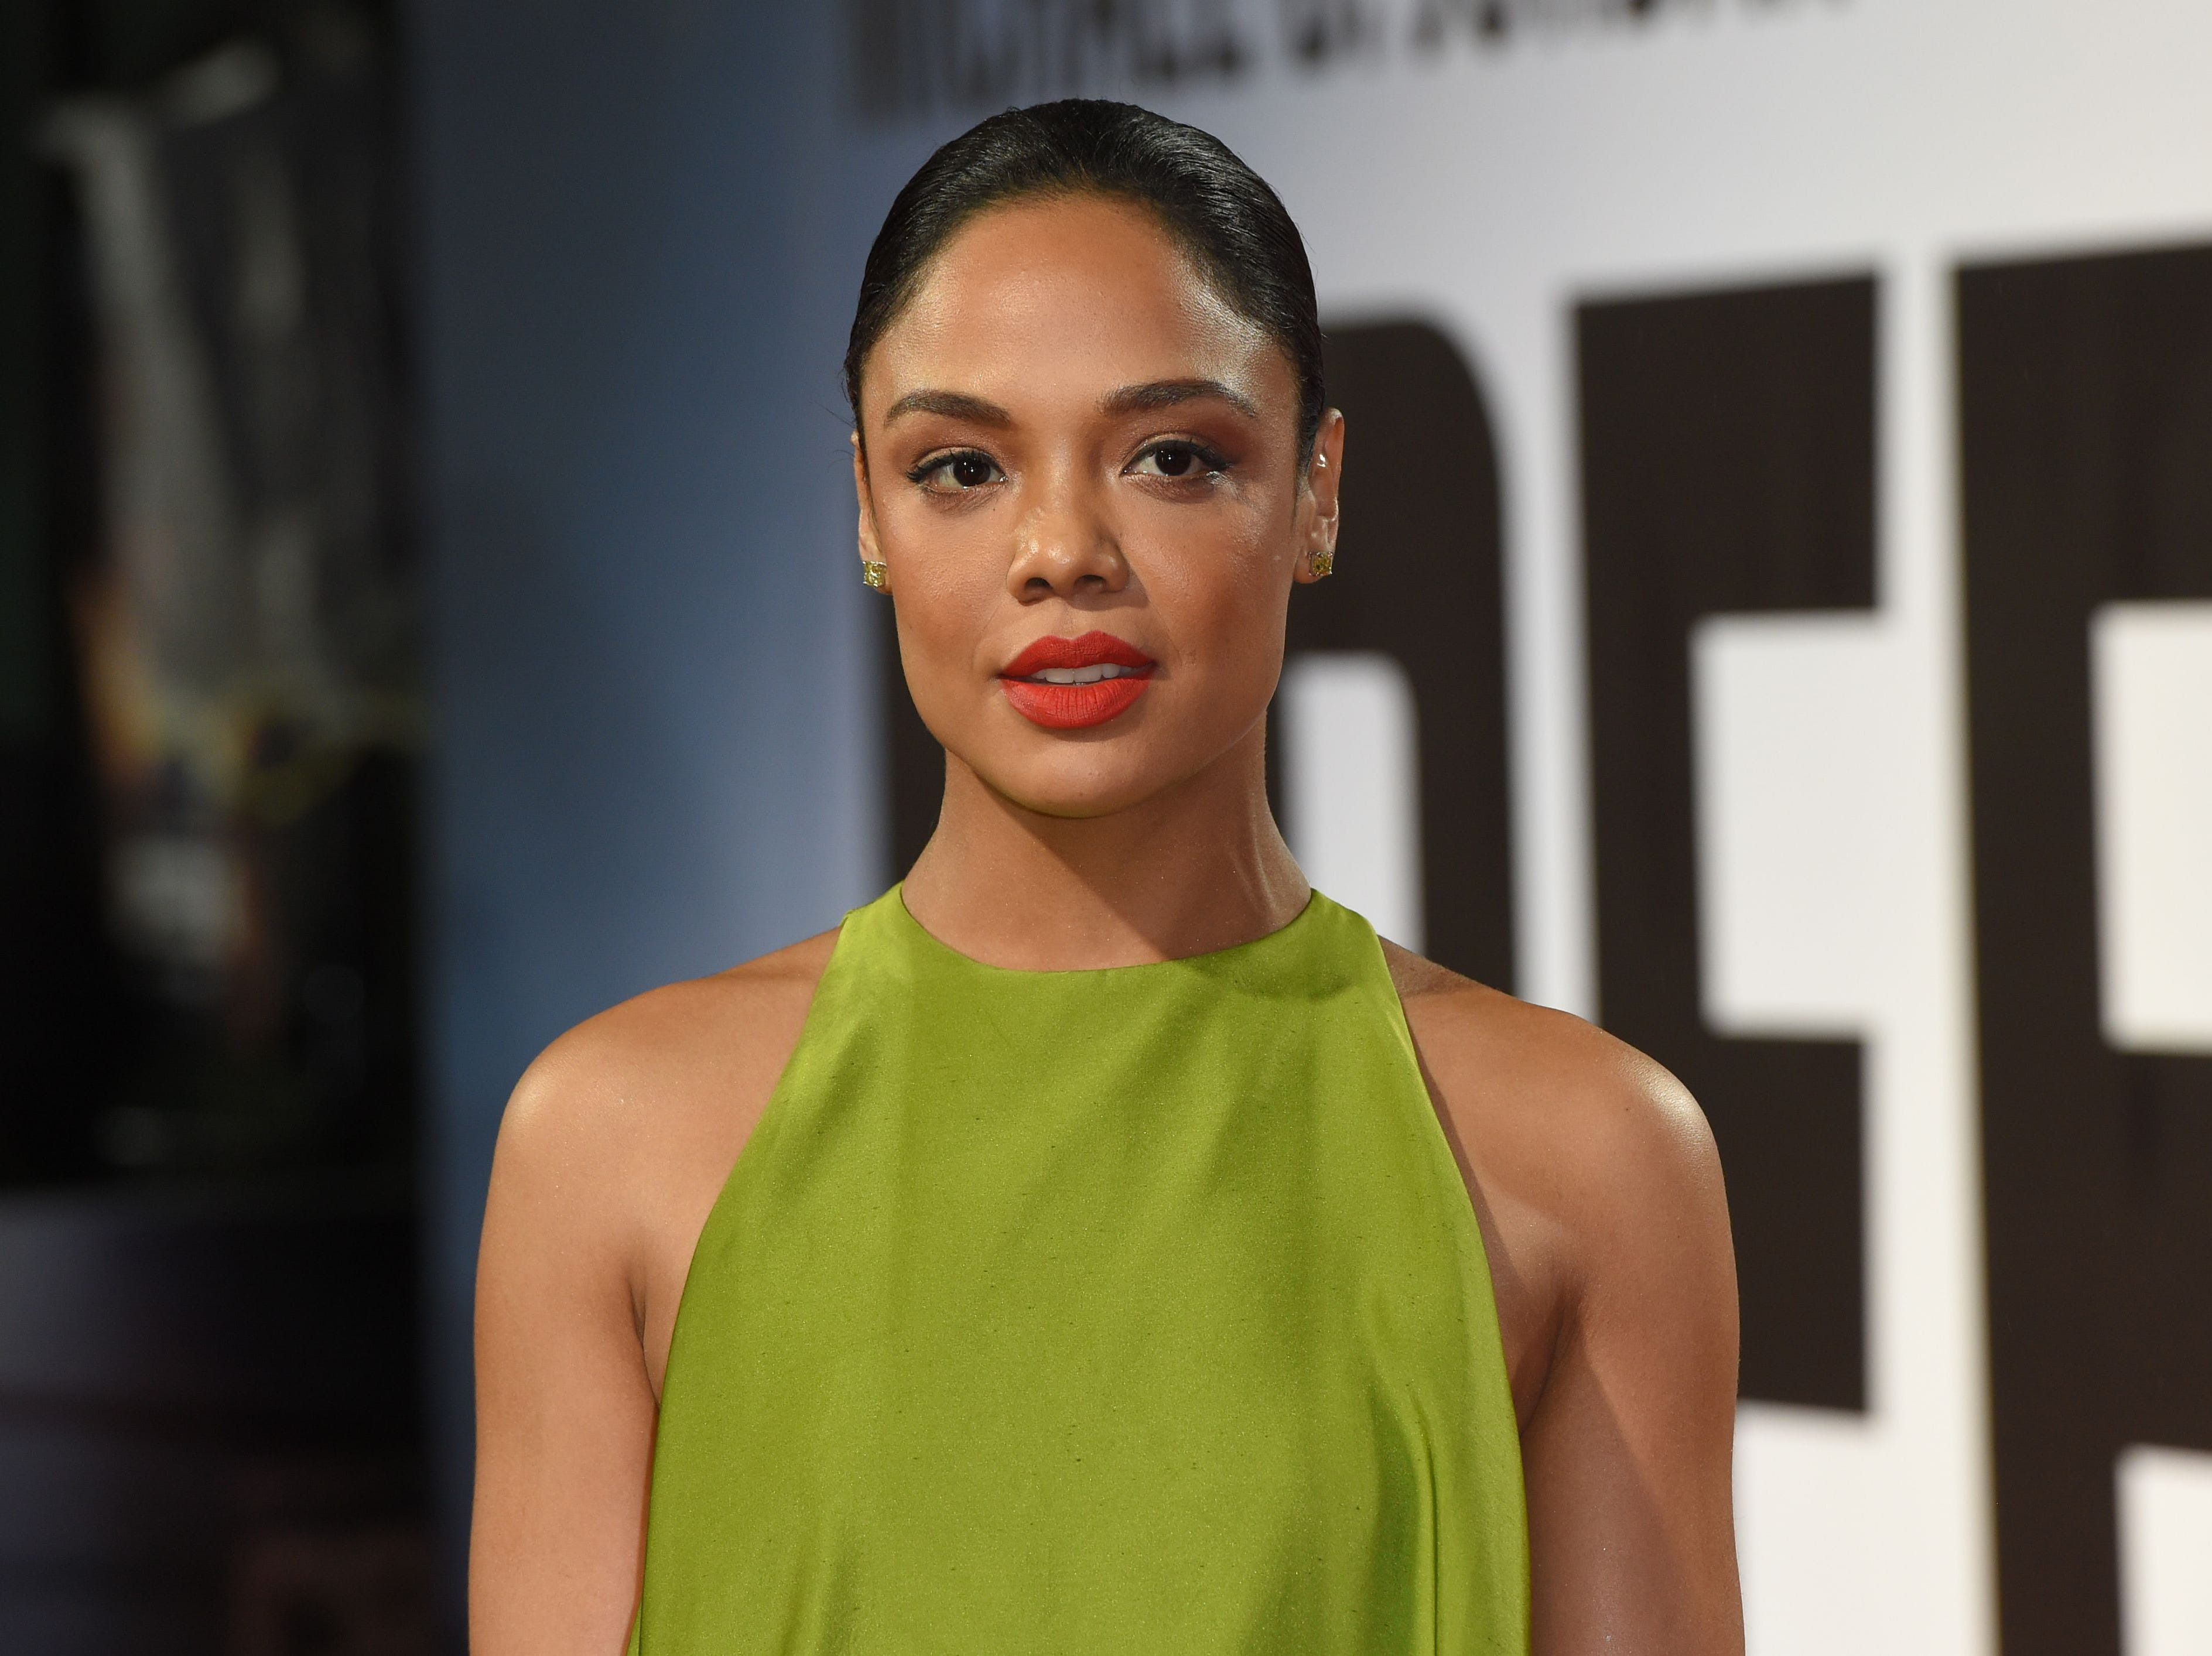 """US actor Tessa Thompson poses upon arrival to attend the European Premiere of the film """"Creed II"""" in London on November 28, 2018. (Photo by Anthony HARVEY / AFP)ANTHONY HARVEY/AFP/Getty Images ORIG FILE ID: AFP_1B679H"""